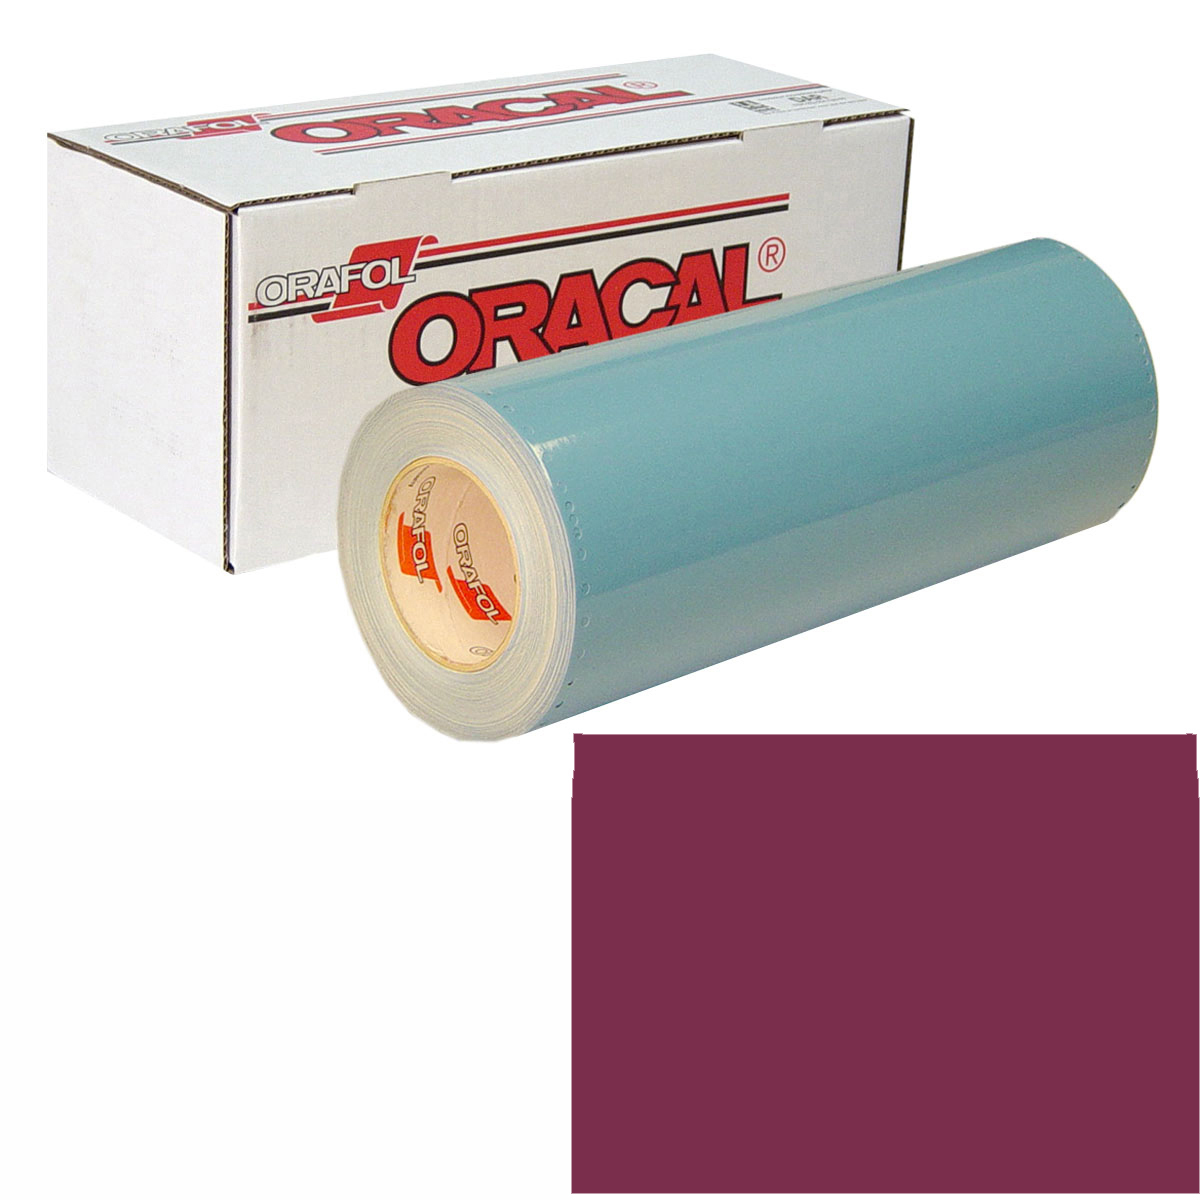 ORACAL 751 Unp 48in X 10yd 026 Purple